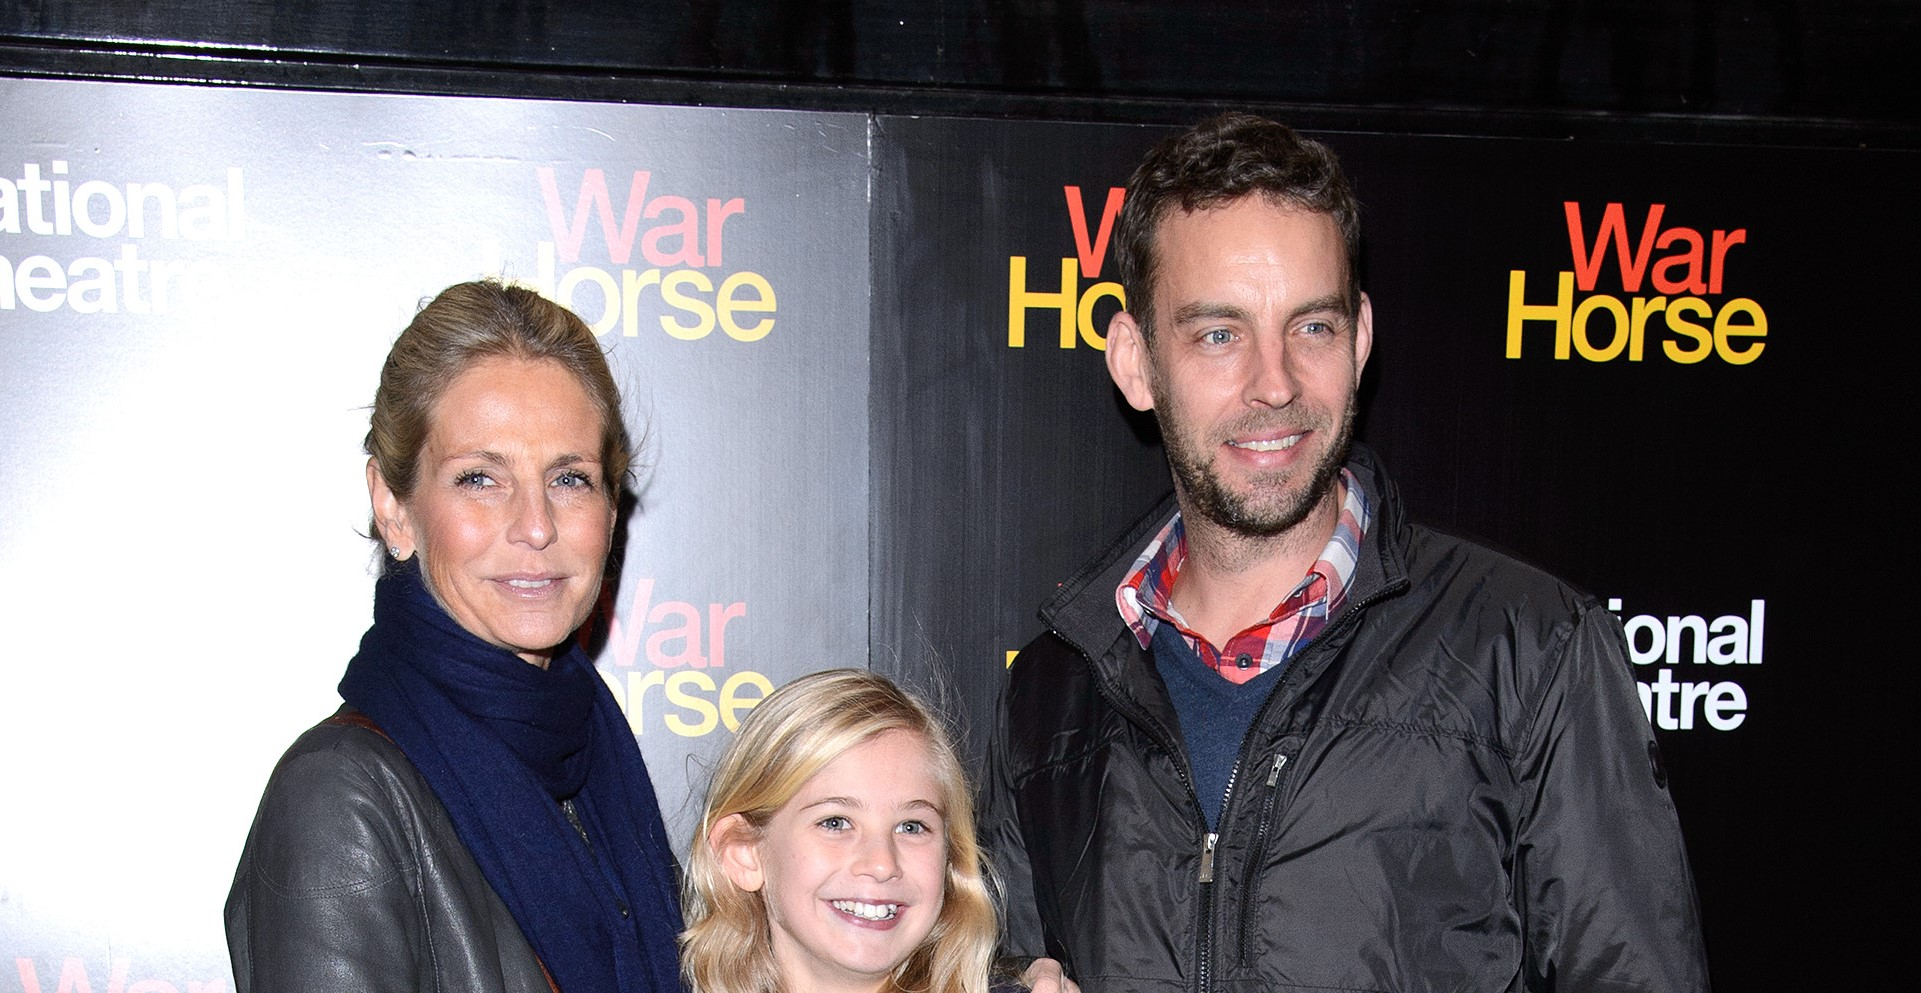 Ulrika Jonsson and husband Brian Monet with daughter in 2012 (Getty Images)